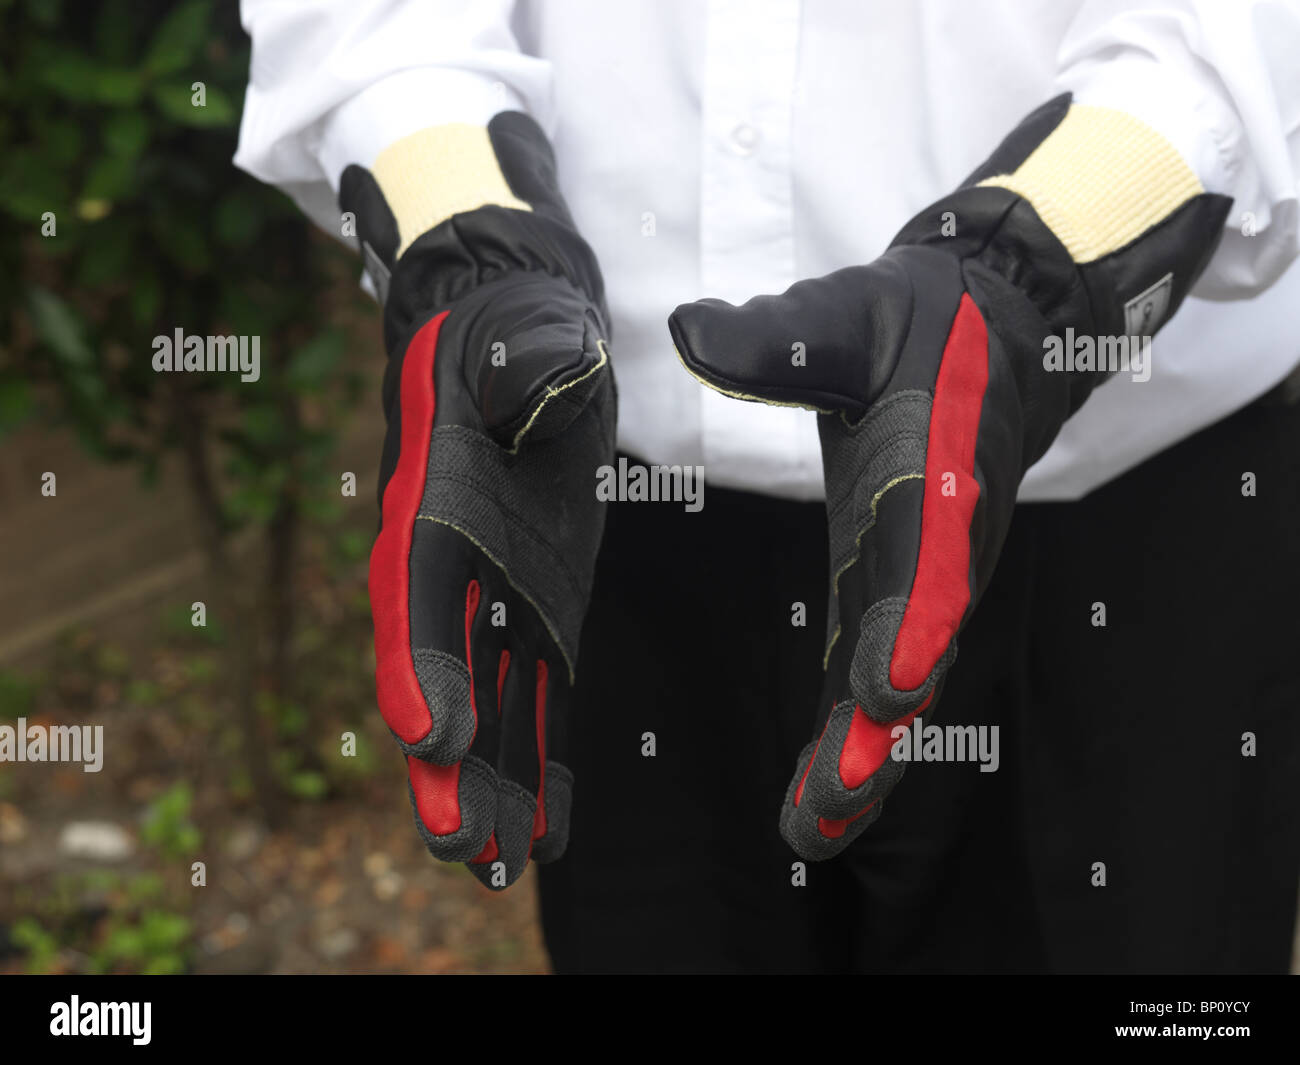 Gloves Fireman Stock Photos & Gloves Fireman Stock Images